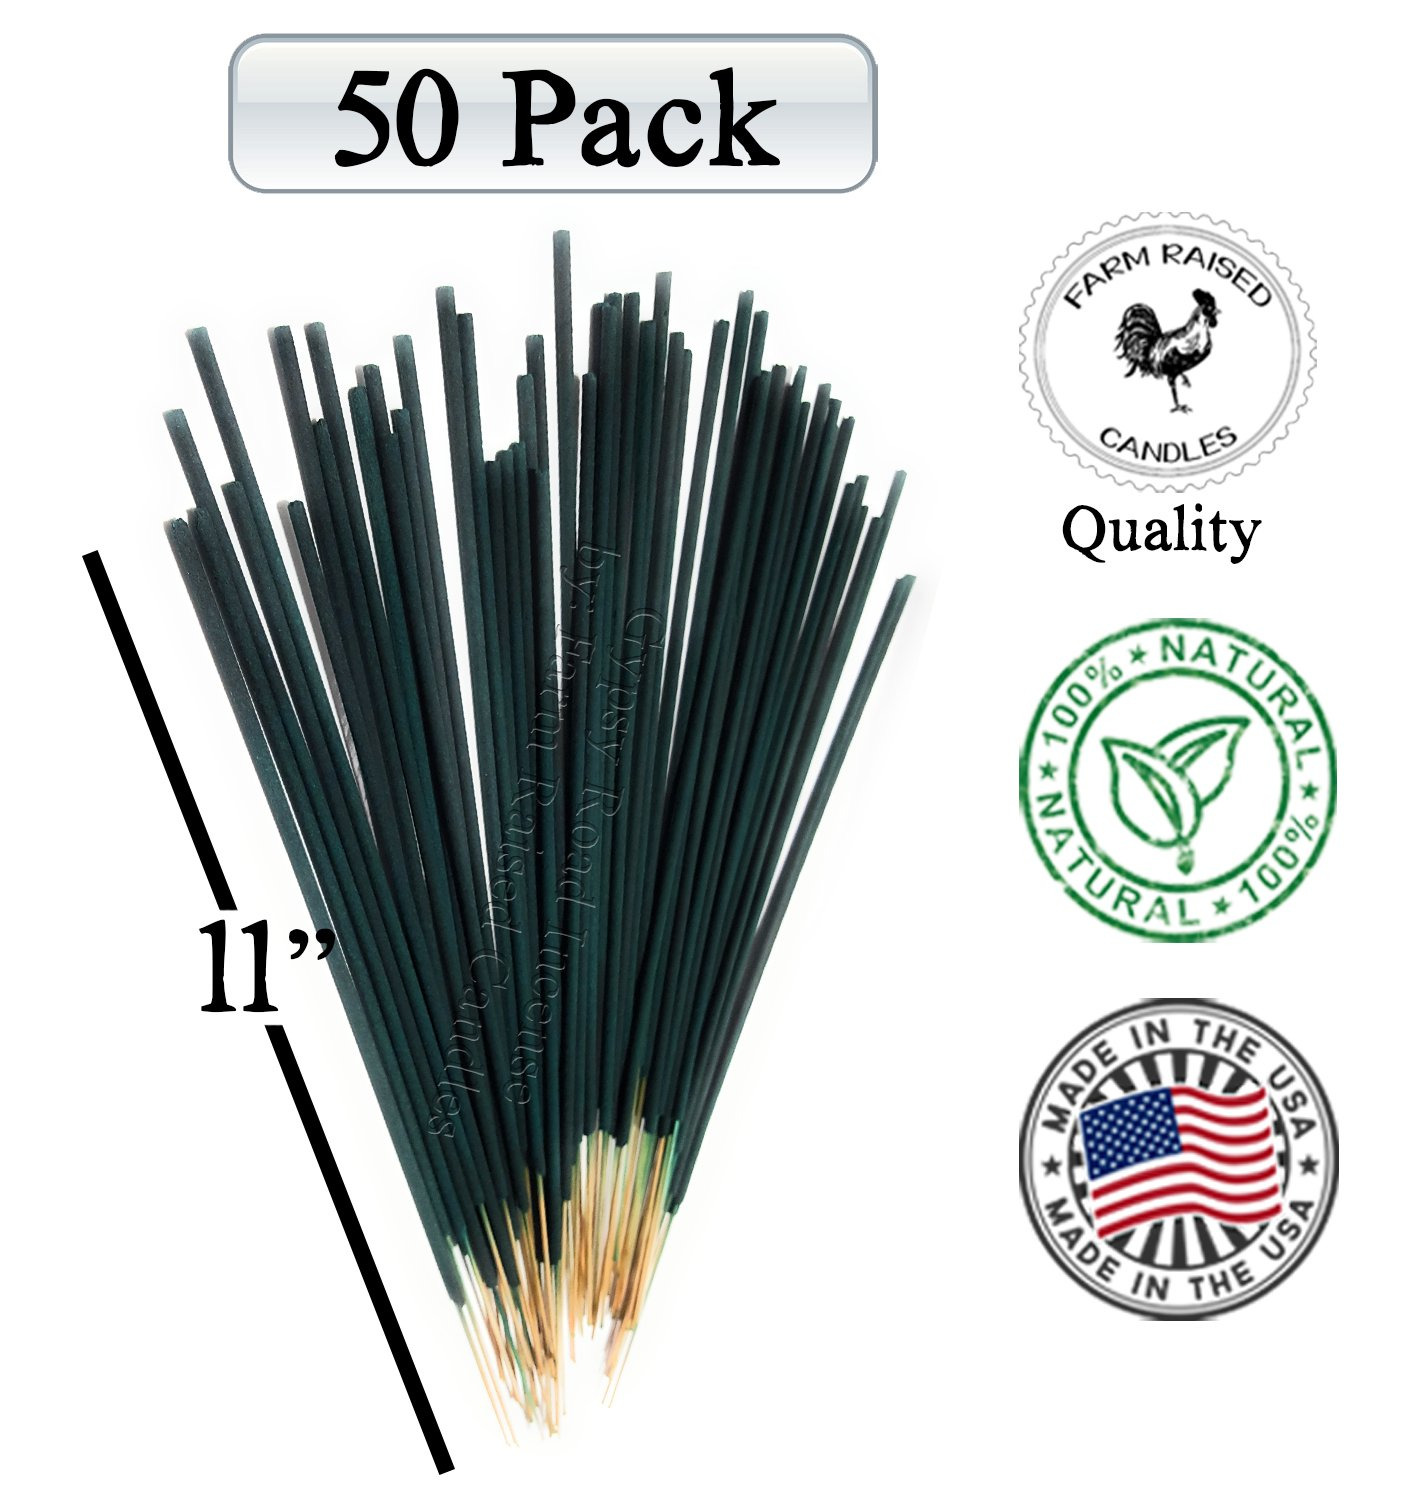 Farm Raised Candles Mintronella Essential Oil Mosquito Gnats Repellent (50 Pack) Citronella Outdoor incense sticks 100% Natural Bamboo Outdoor Deck Patio Party. American Made Organic